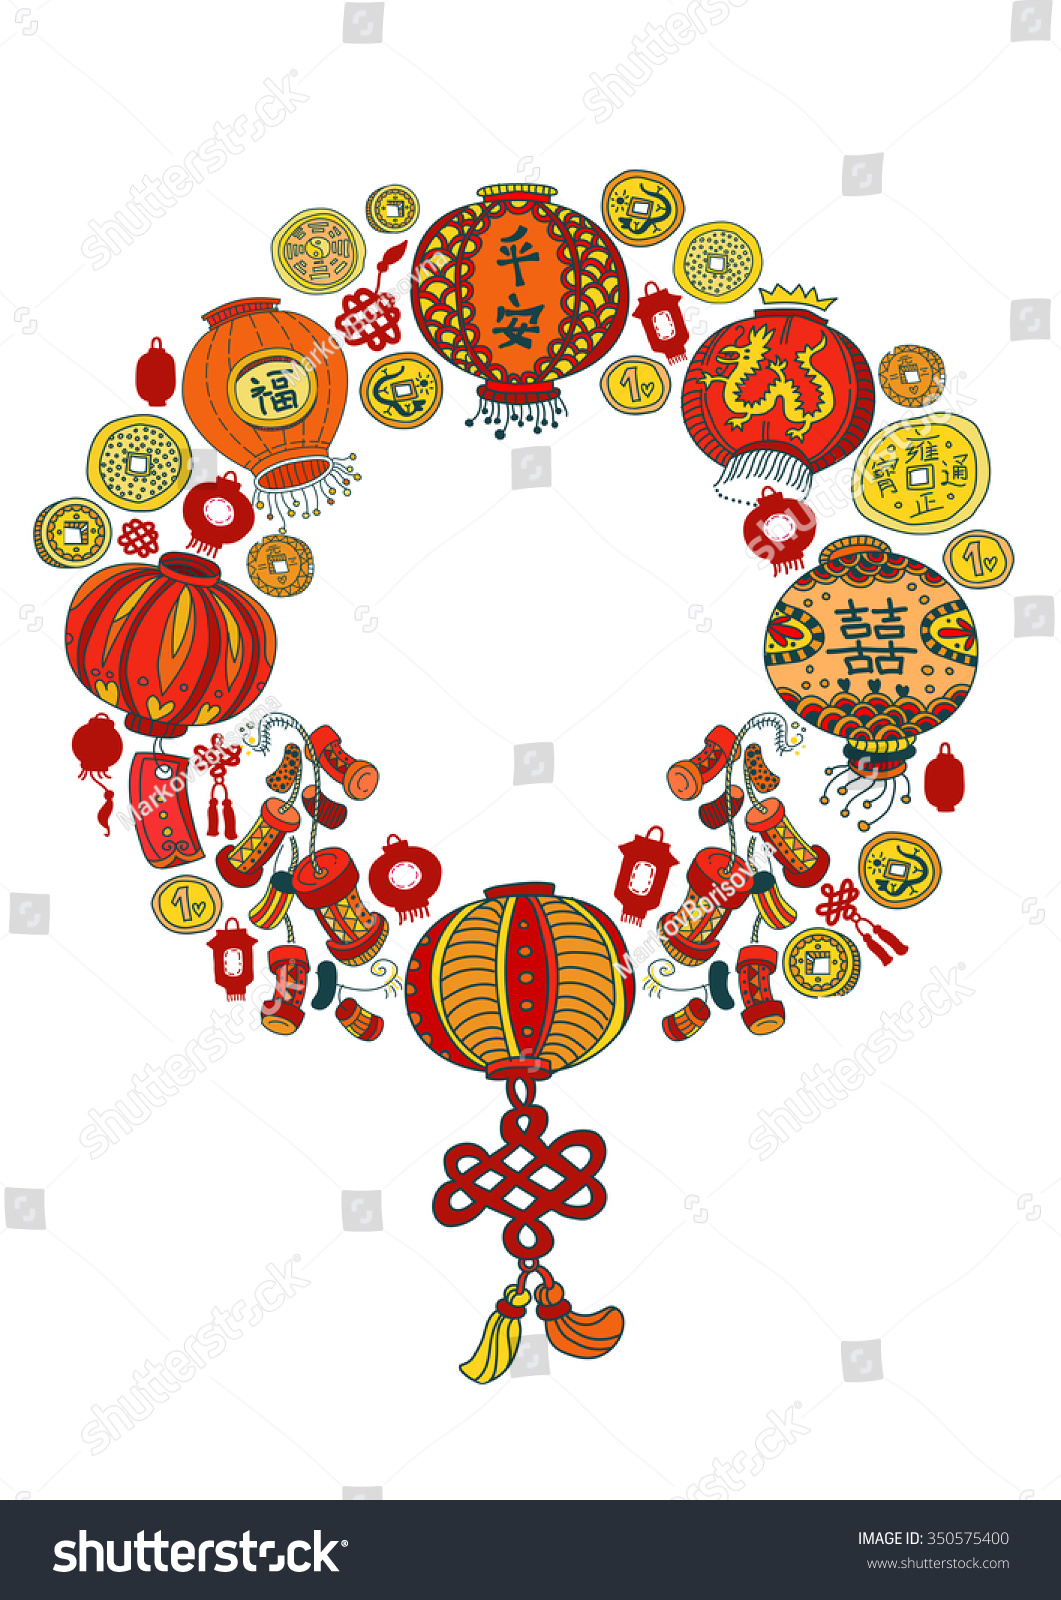 Chinese New Year Card Wreath Stylized Stock Vector (Royalty Free ...